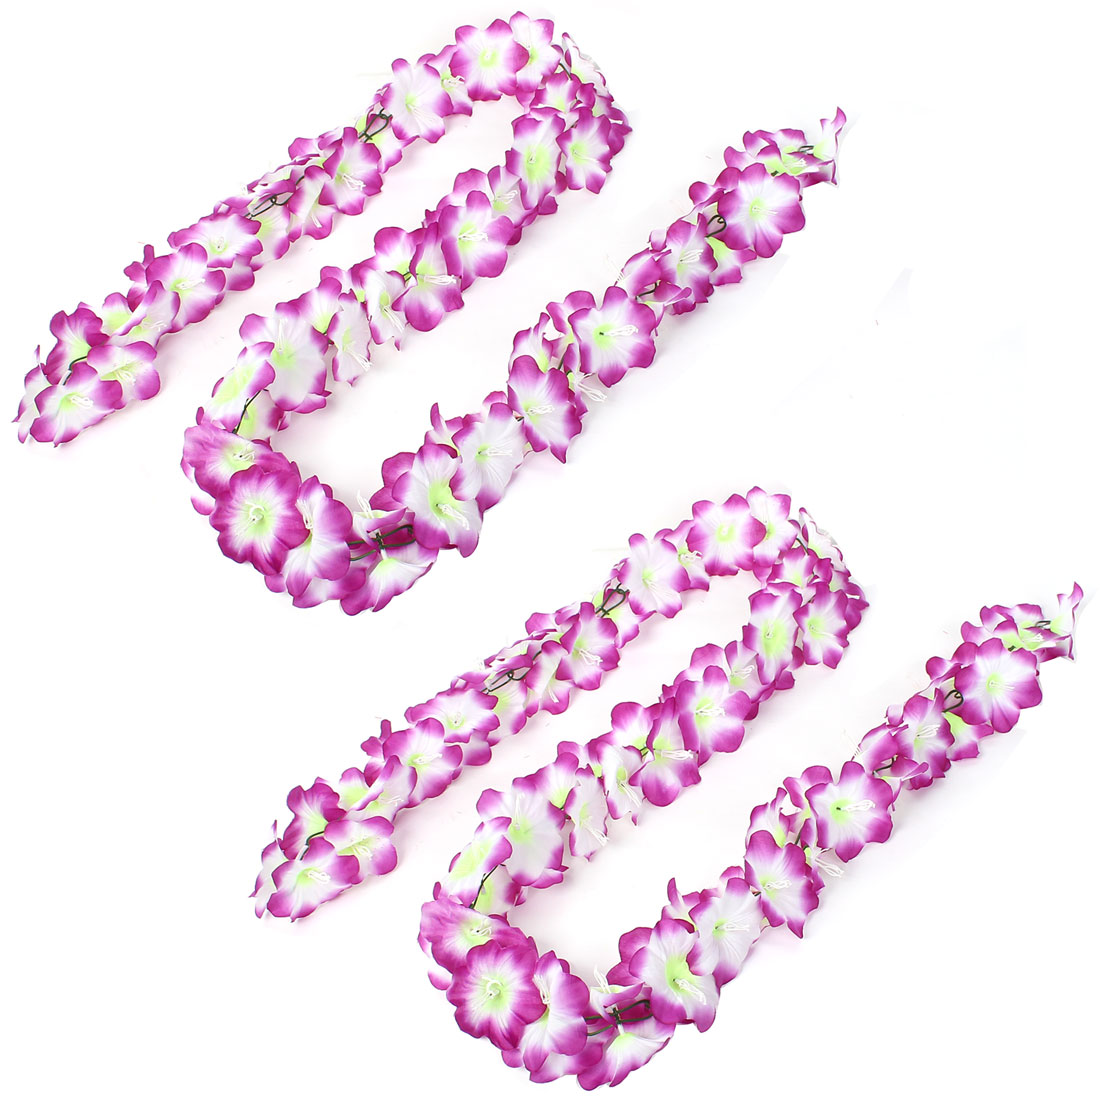 Wedding Home Decor Artificial Fake Hanging Garland Flower String Vine Purple 2Pcs